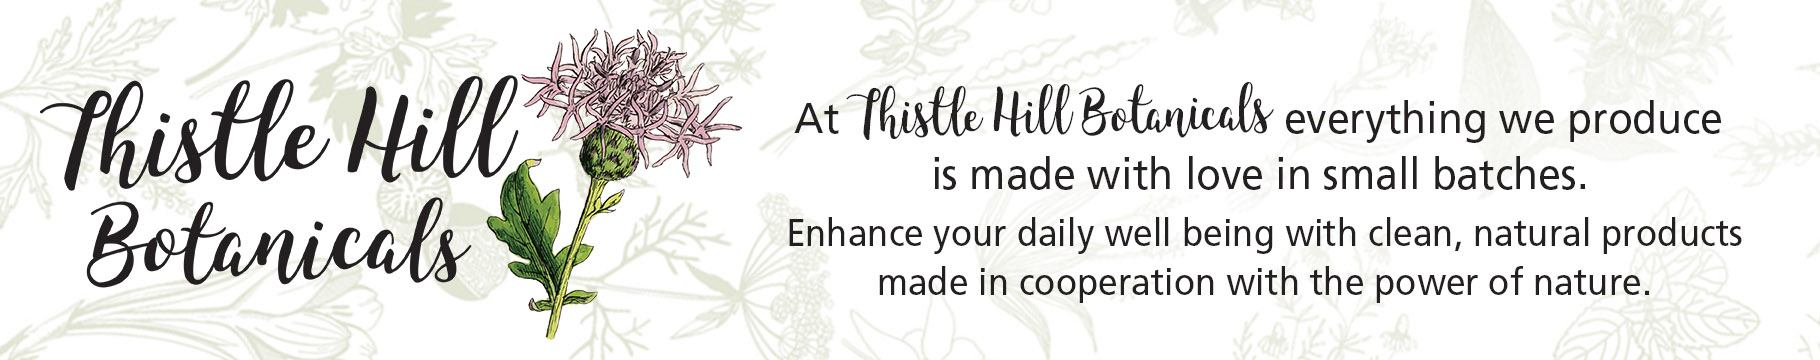 Thistle Hill Botanicals